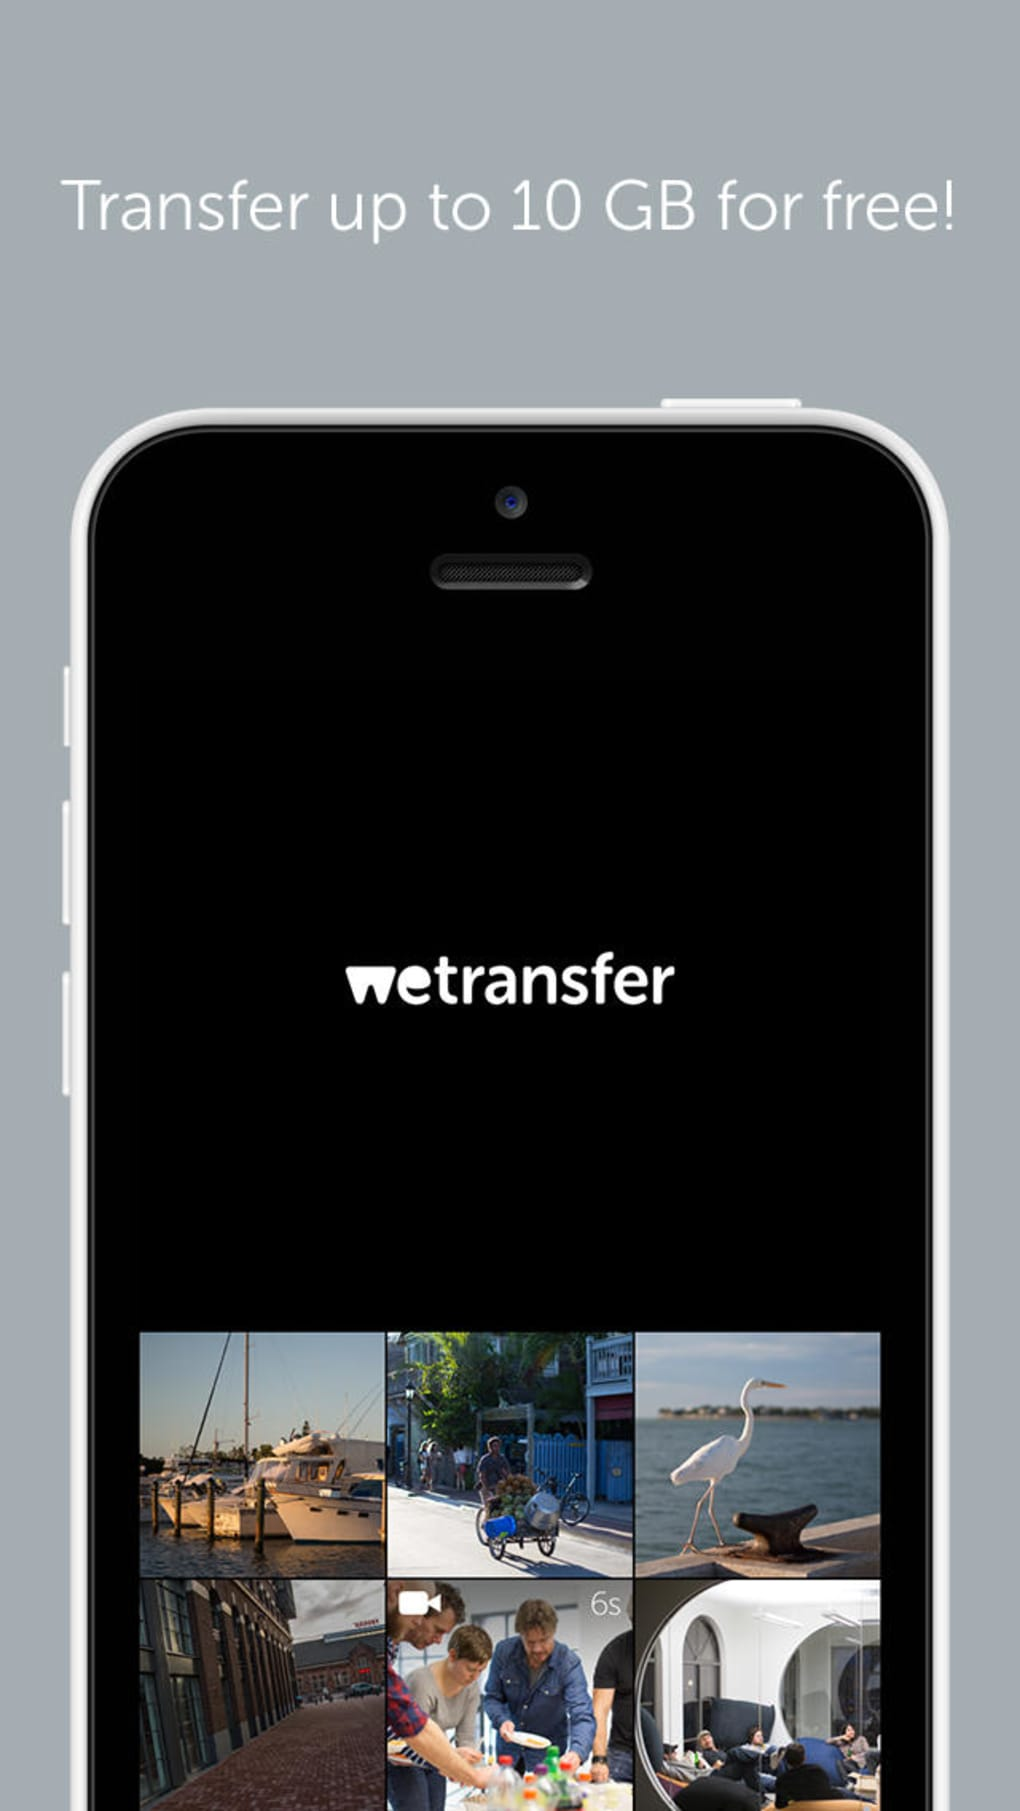 fichier wetransfer sur iphone